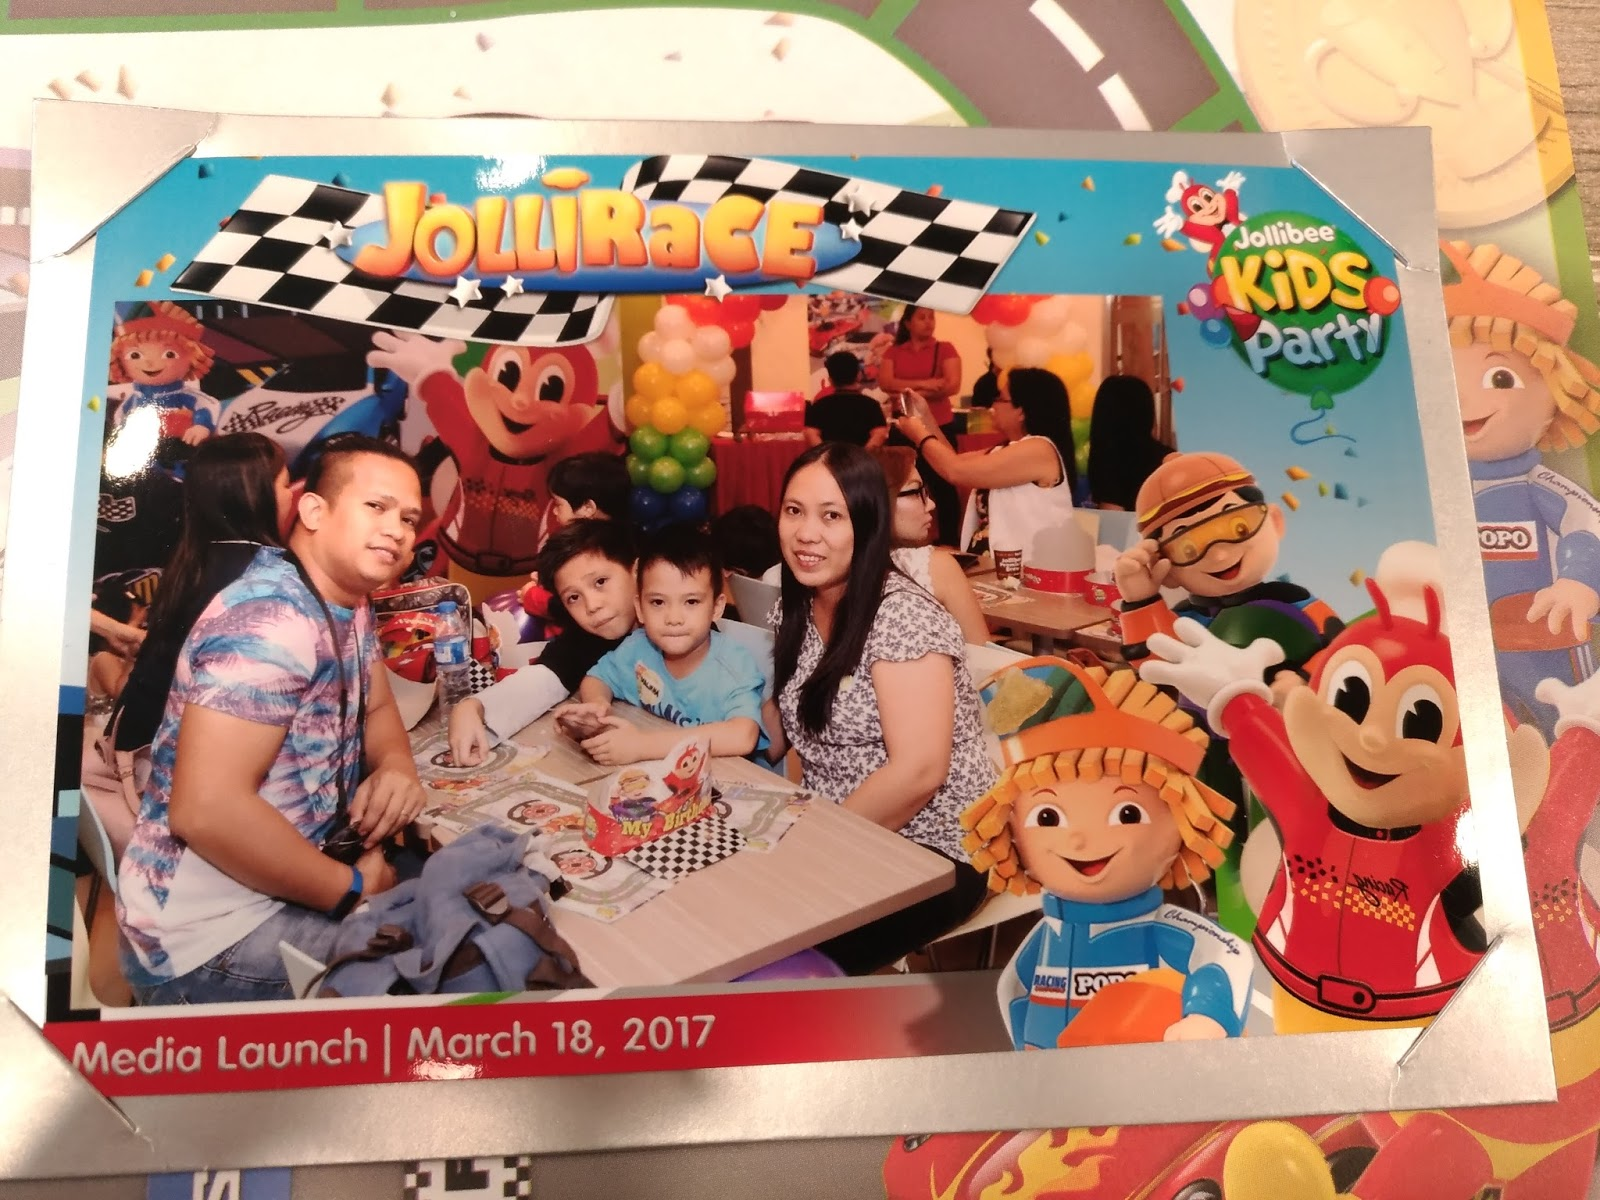 Rev It Up With The Newest Theme Party The JolliRace Party Theme - Birthday invitation jollibee